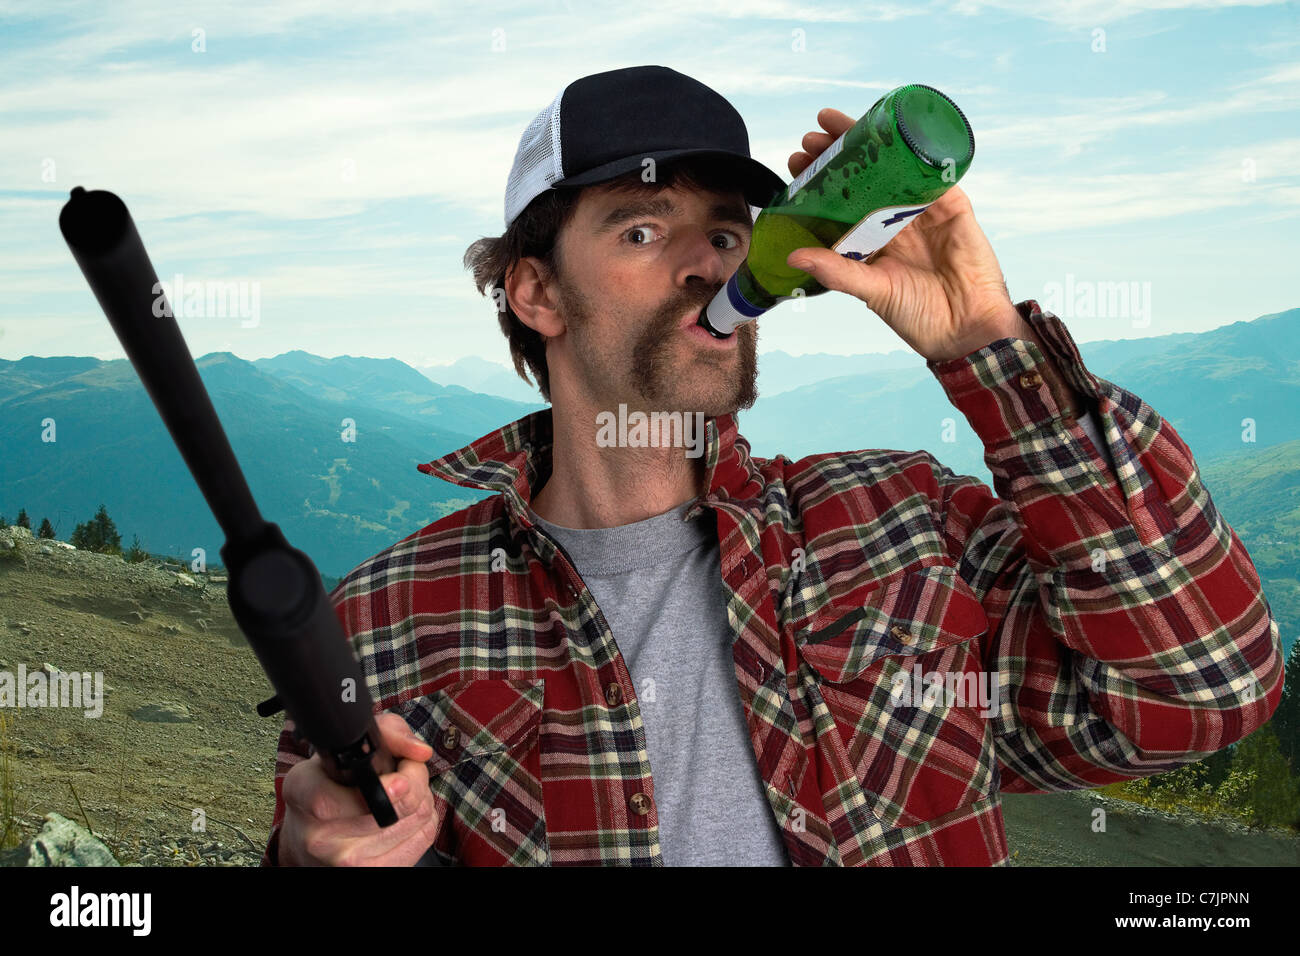 Man with automatic gun drinking beer - Stock Image